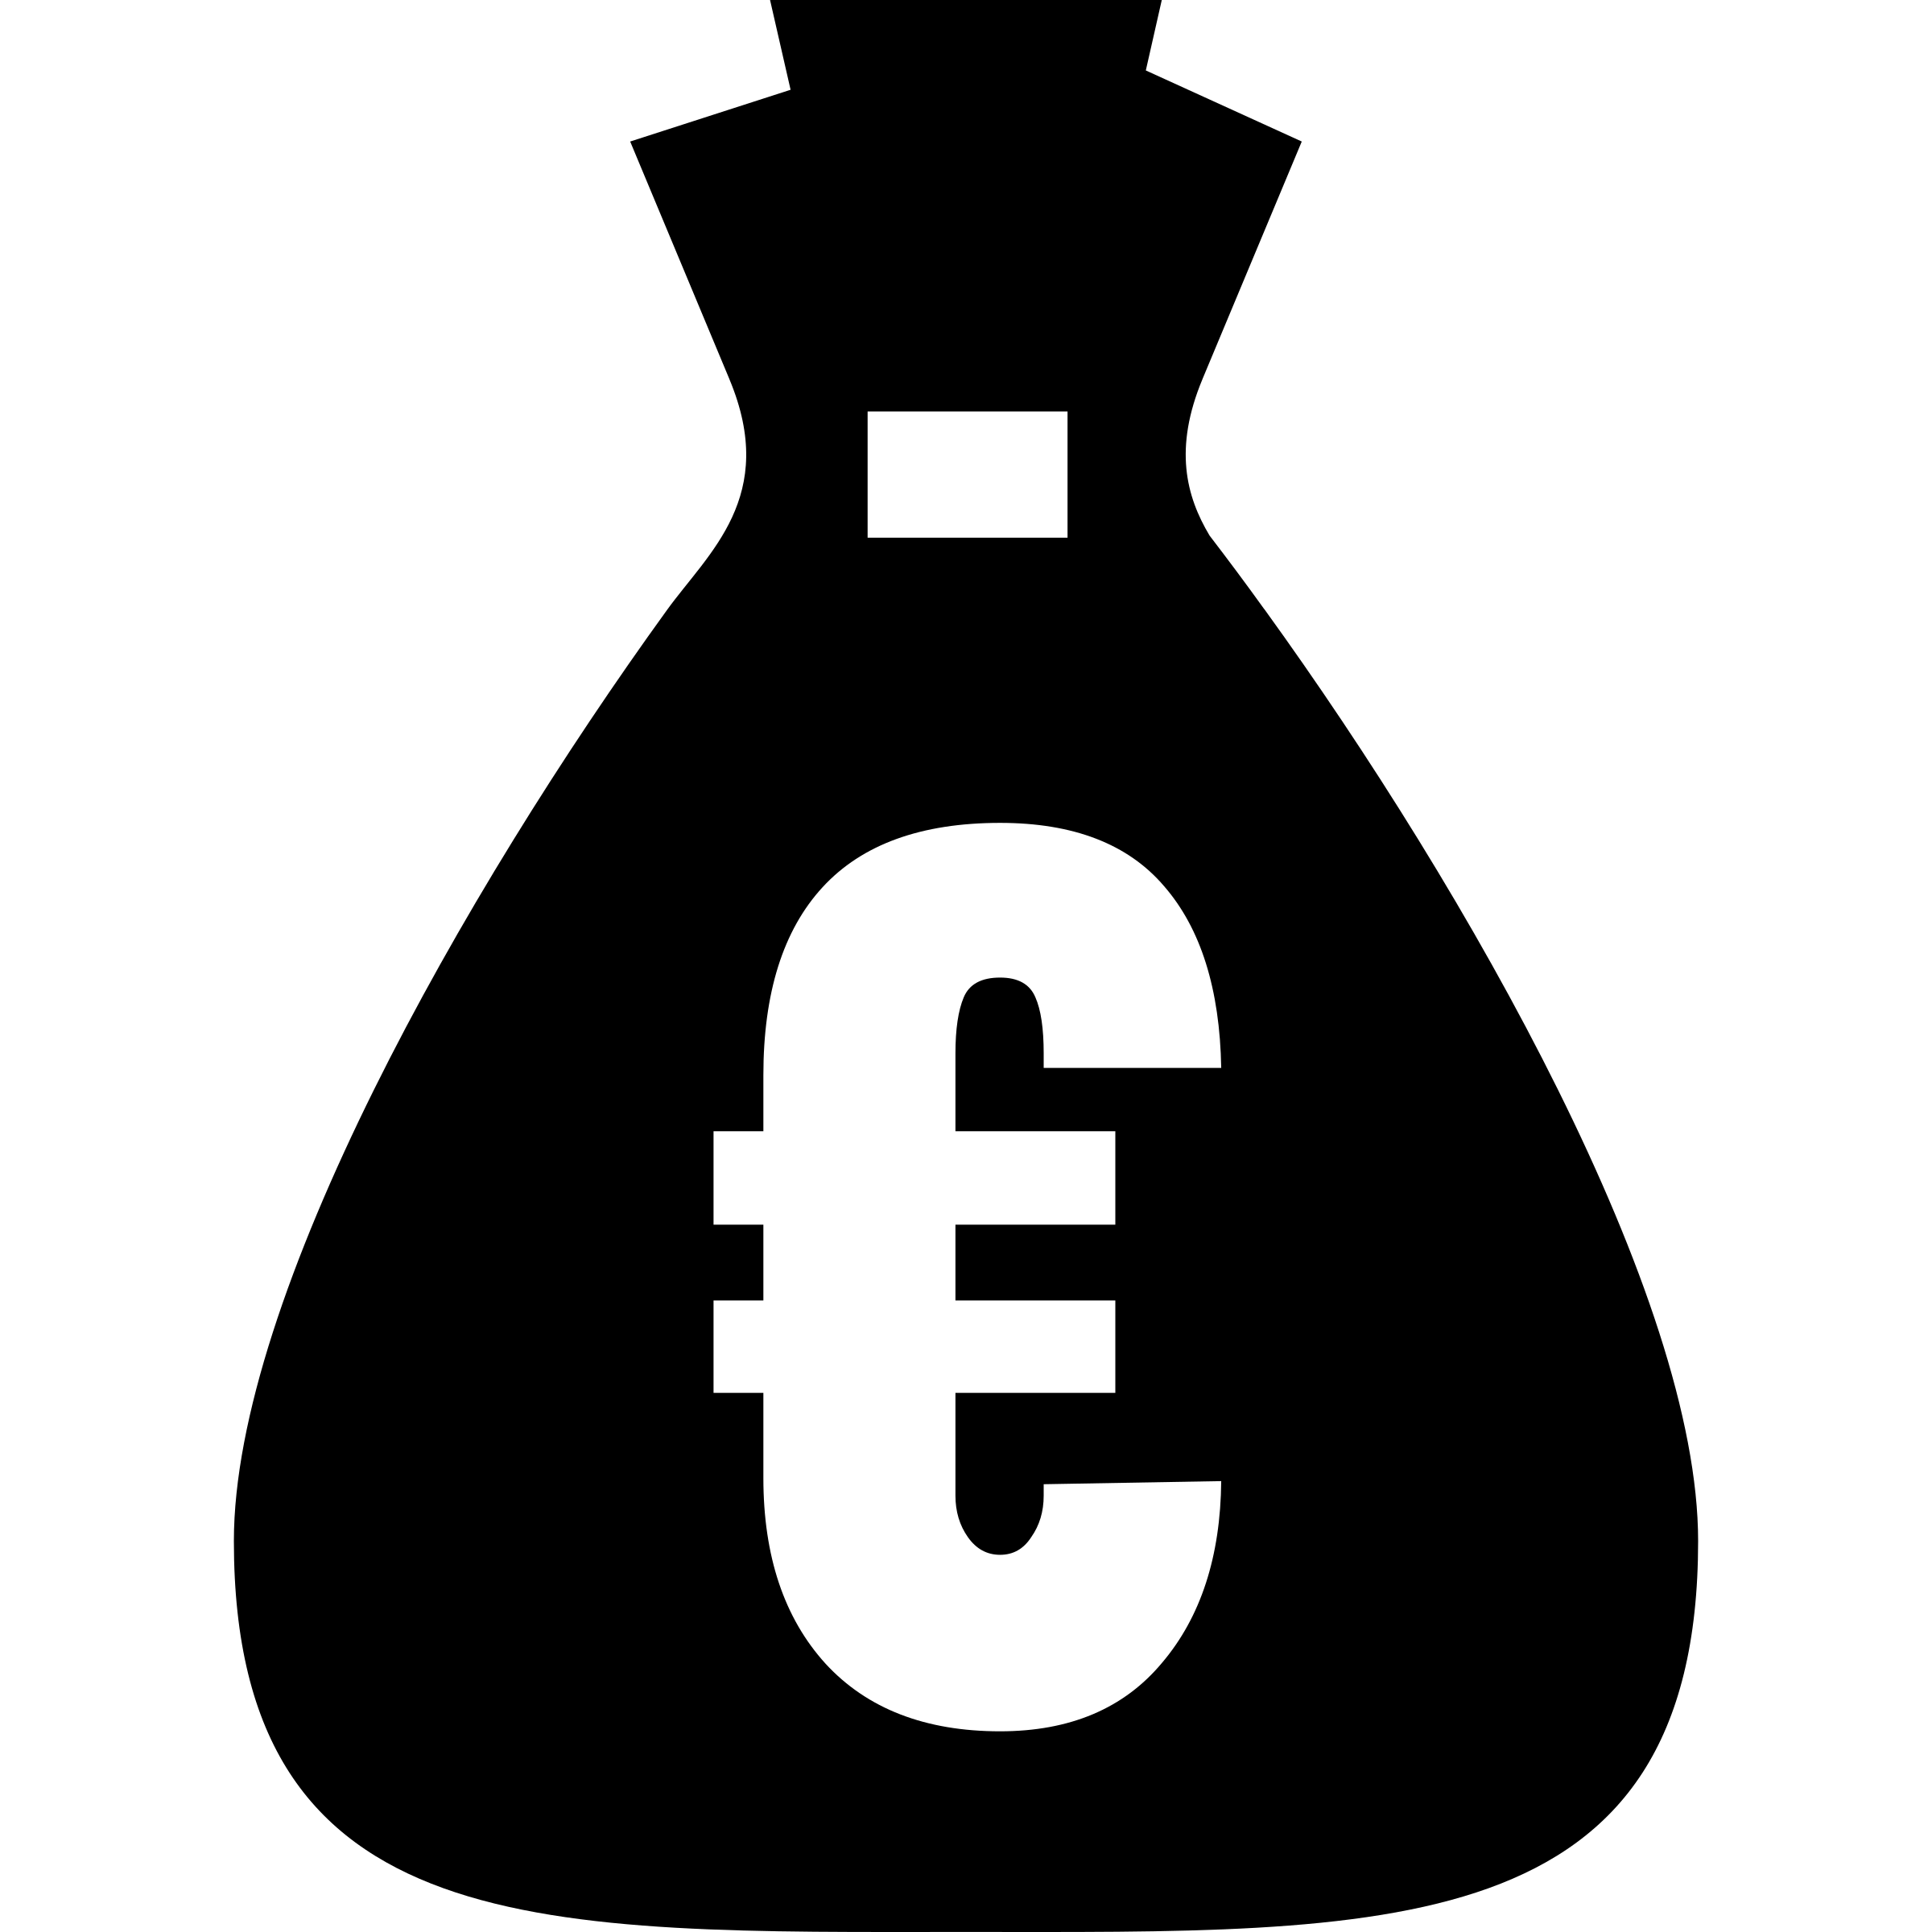 Money bag clipart black and white picture library download Clipart - euro money bag picture library download